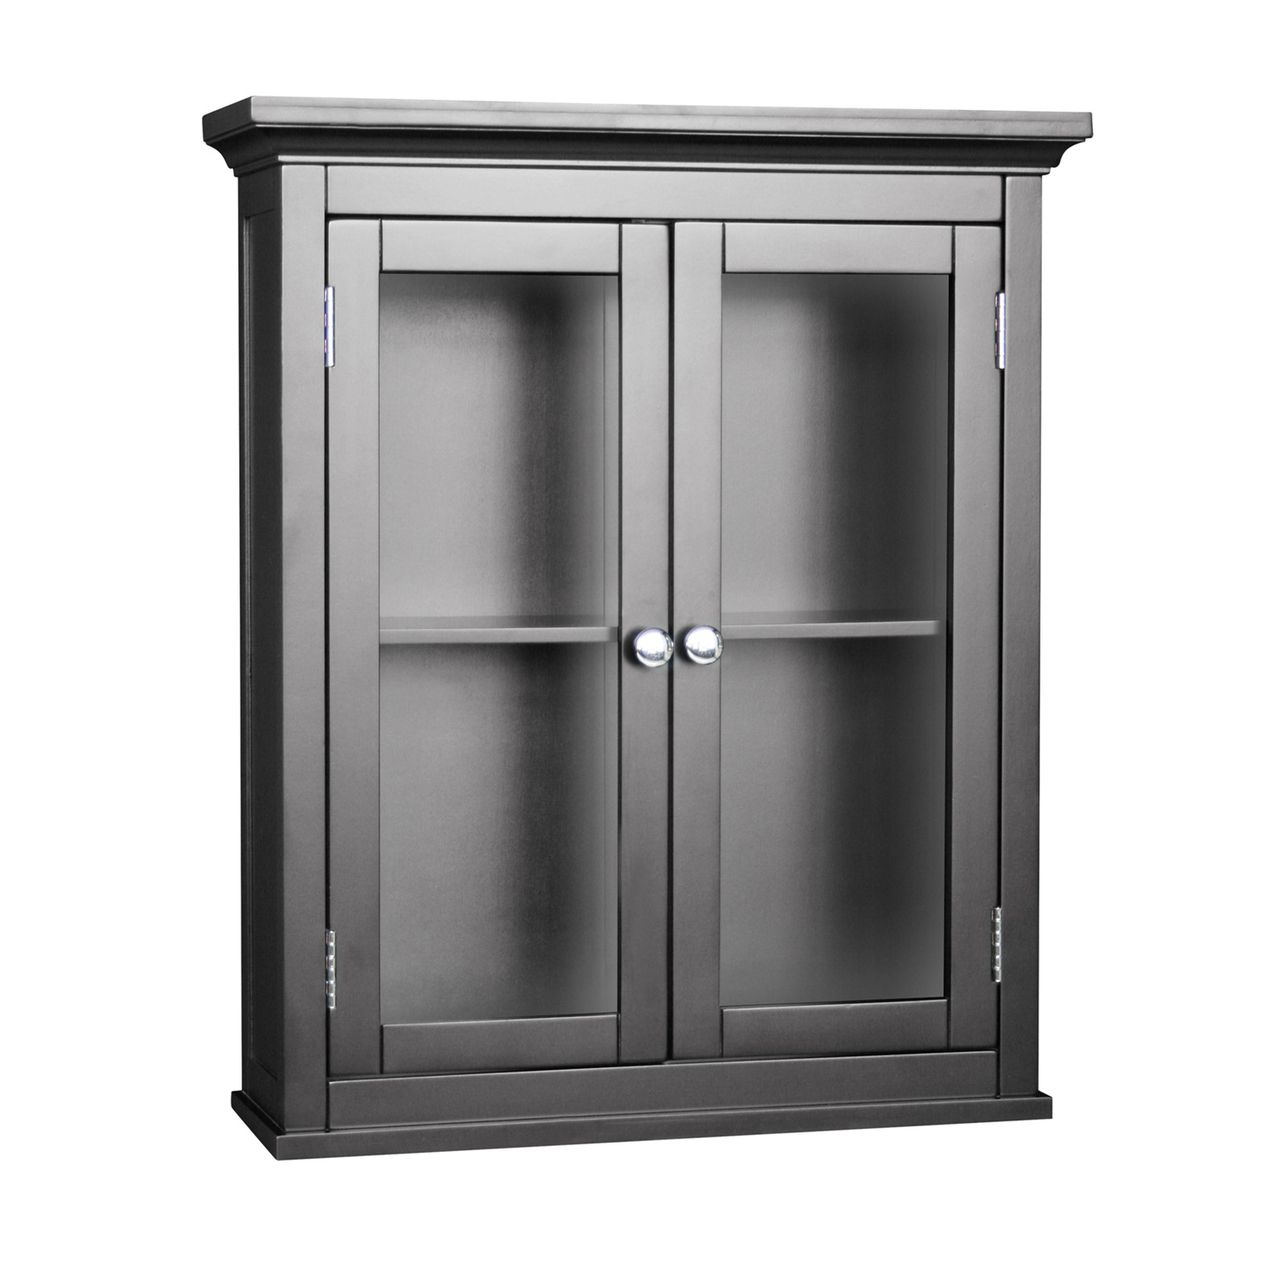 Dark Espresso Bathroom Wall Cabinet W2 Glass Doors Adjustable